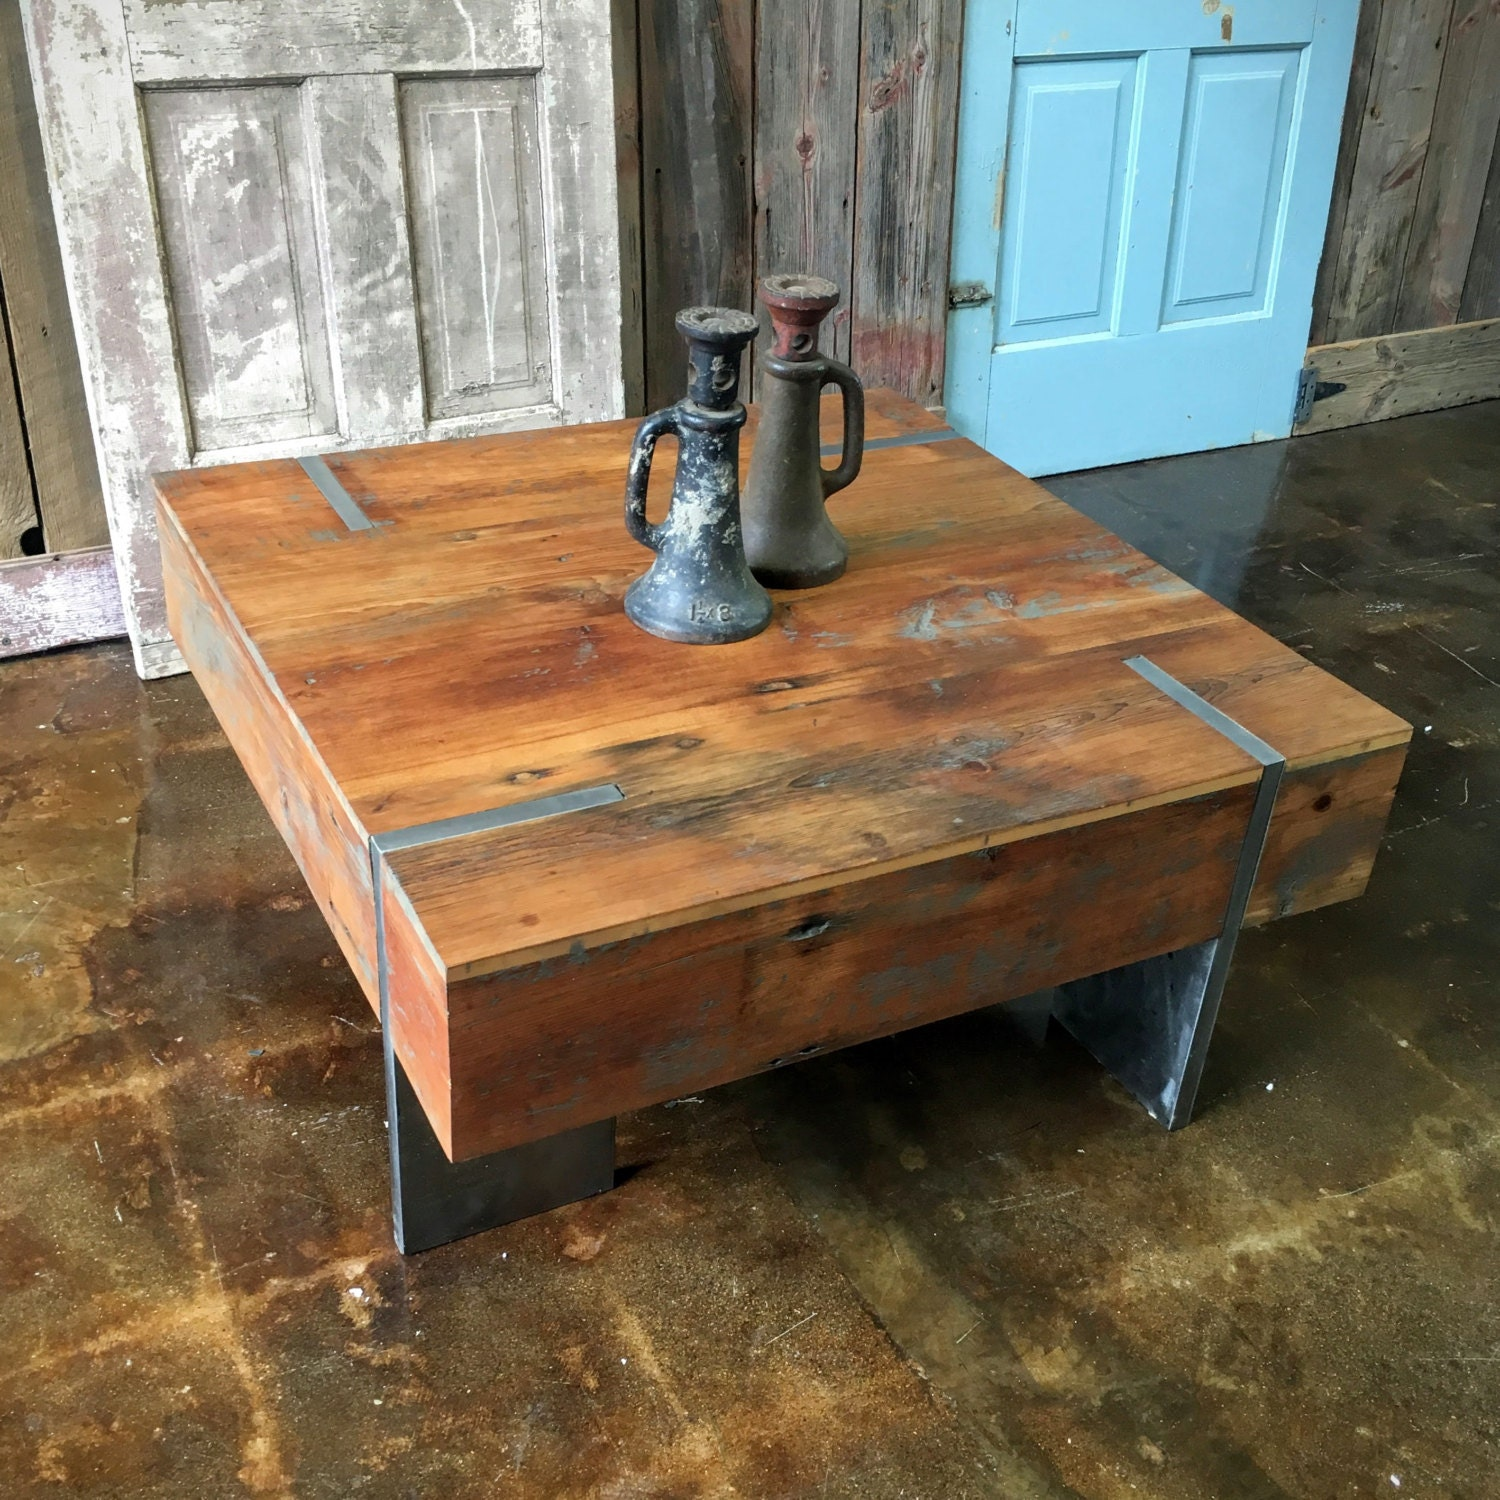 Solid Stainless Steel Coffee Table: Square Modern Reclaimed Coffee Table / Solid Steel Legs IN